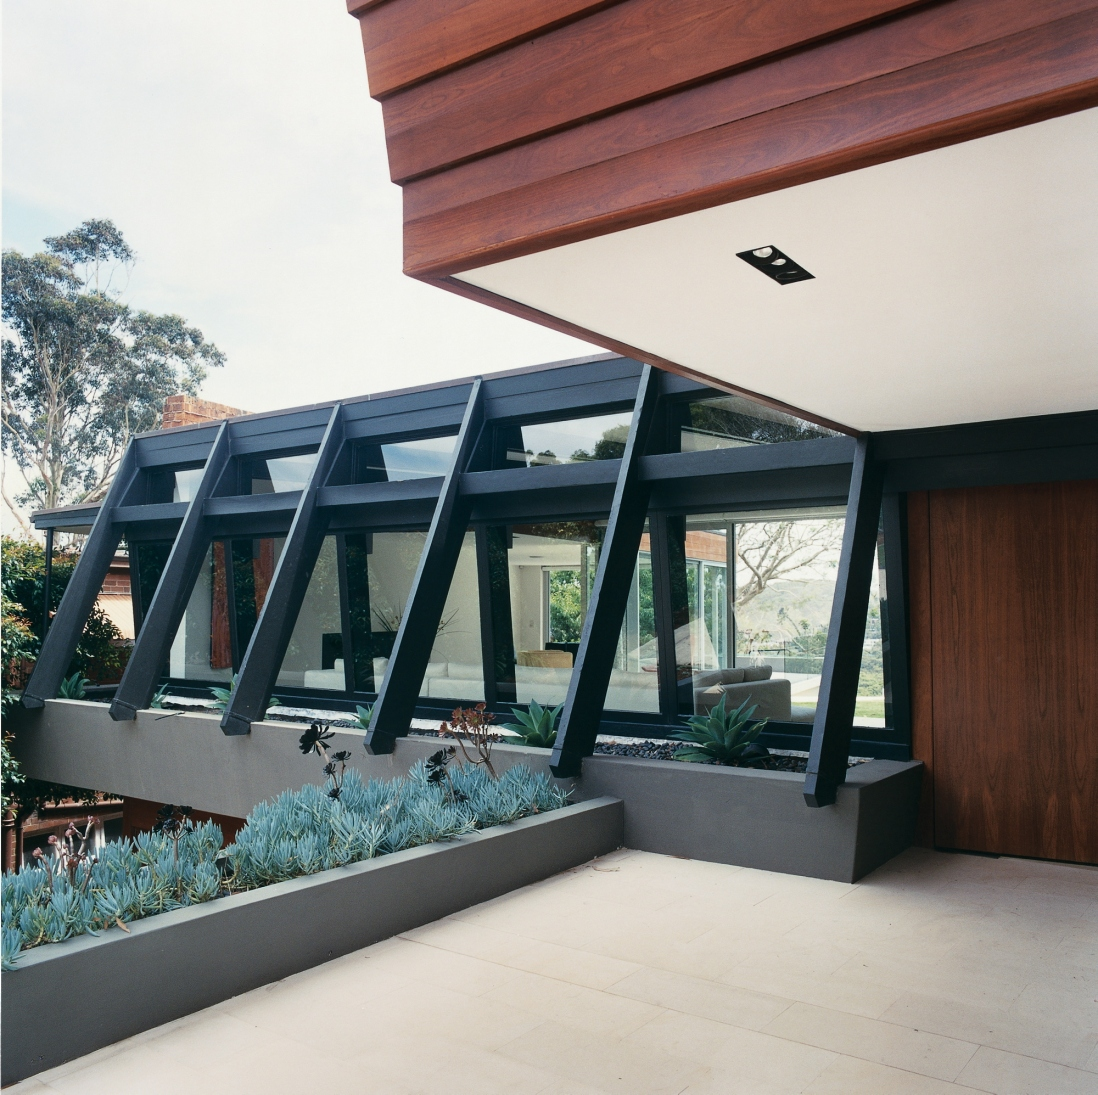 This is a photograph showing the detail of timber frames outside one set of windows with raised garden beds planted below